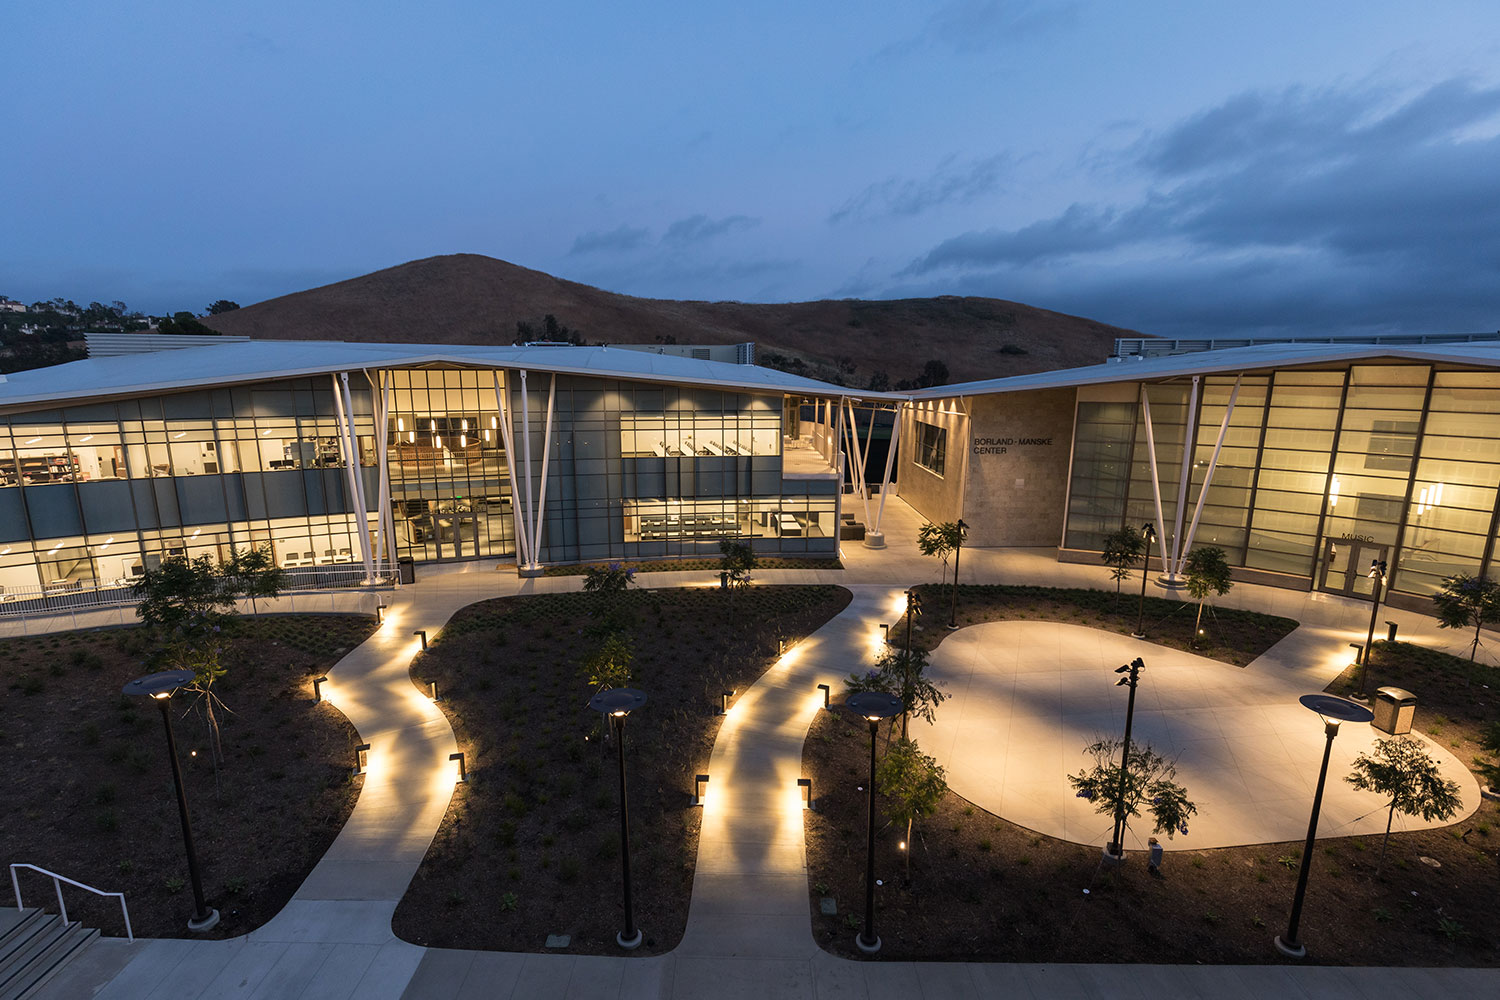 Concordia University Irvine, WSDG was commissioned for the design, acoustic consulting and systems integration of their new audio complex. Exterior at night.